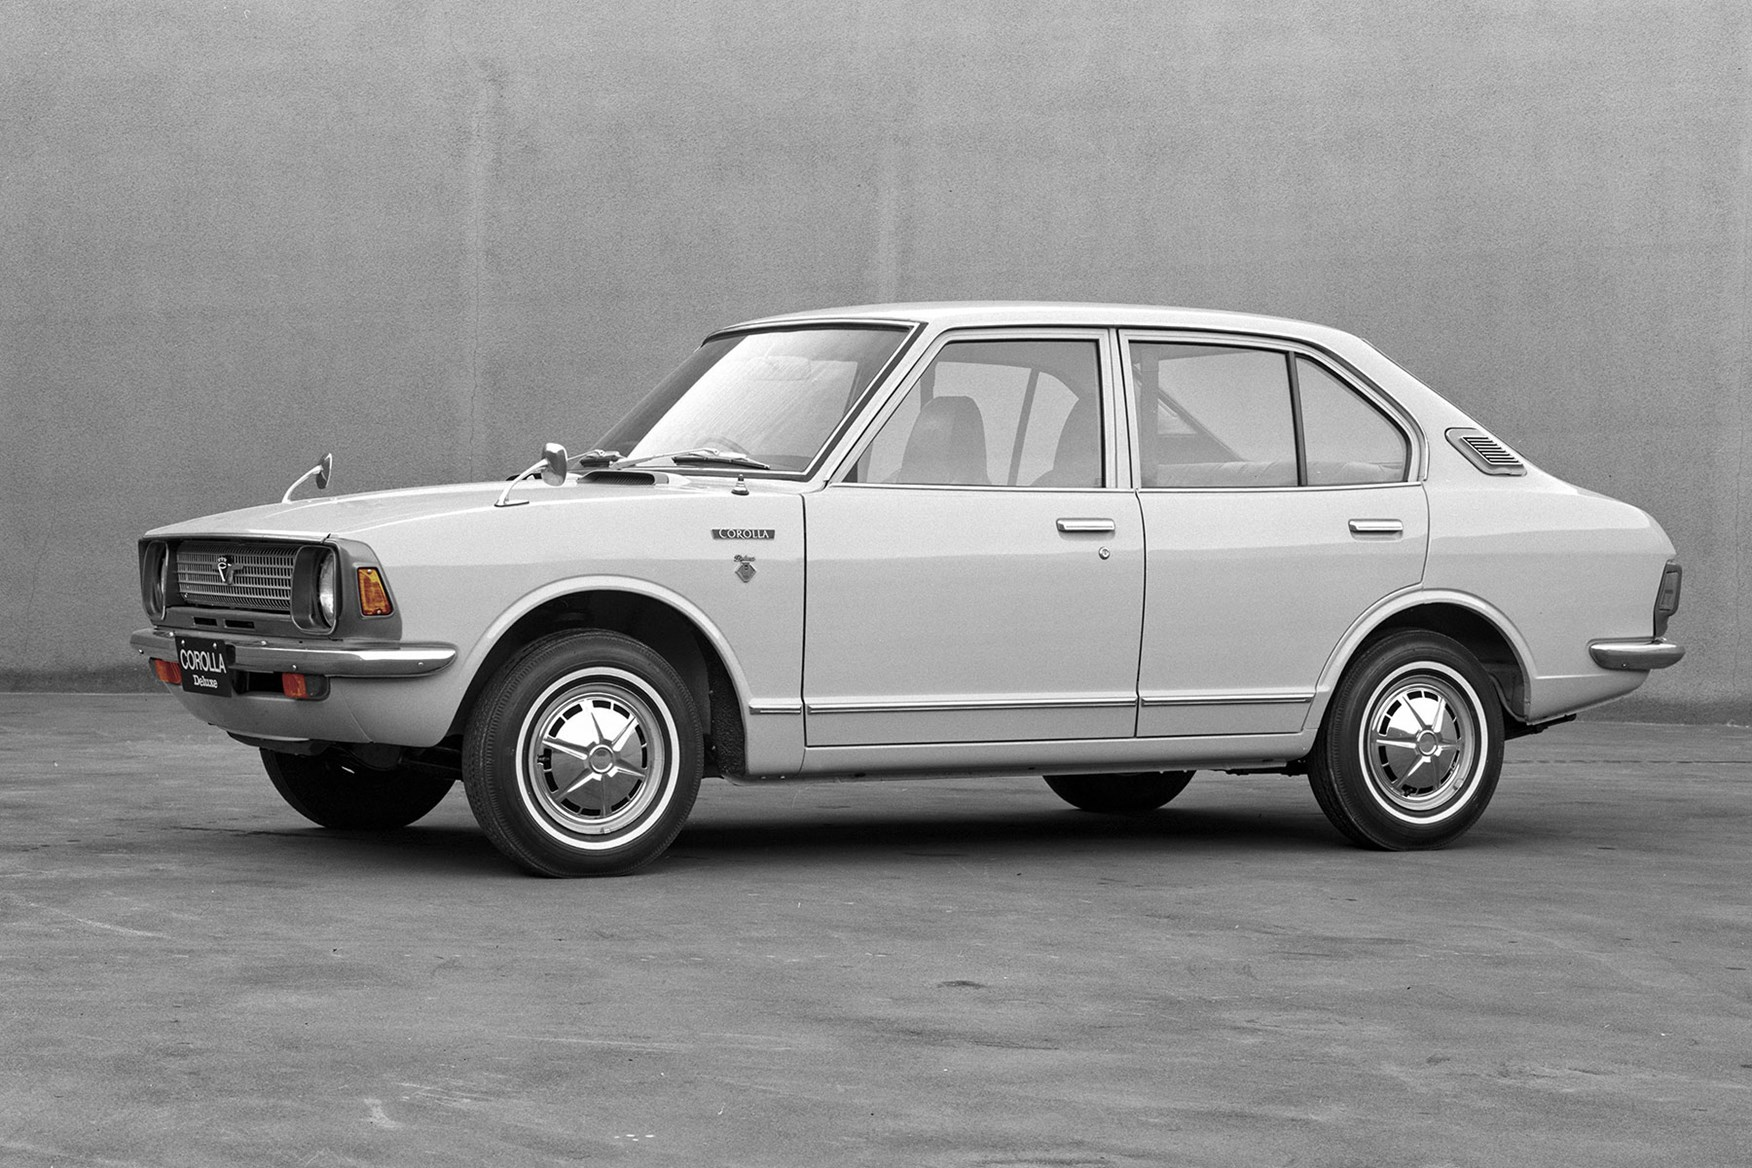 1970 Toyota Corolla - 2nd Generation